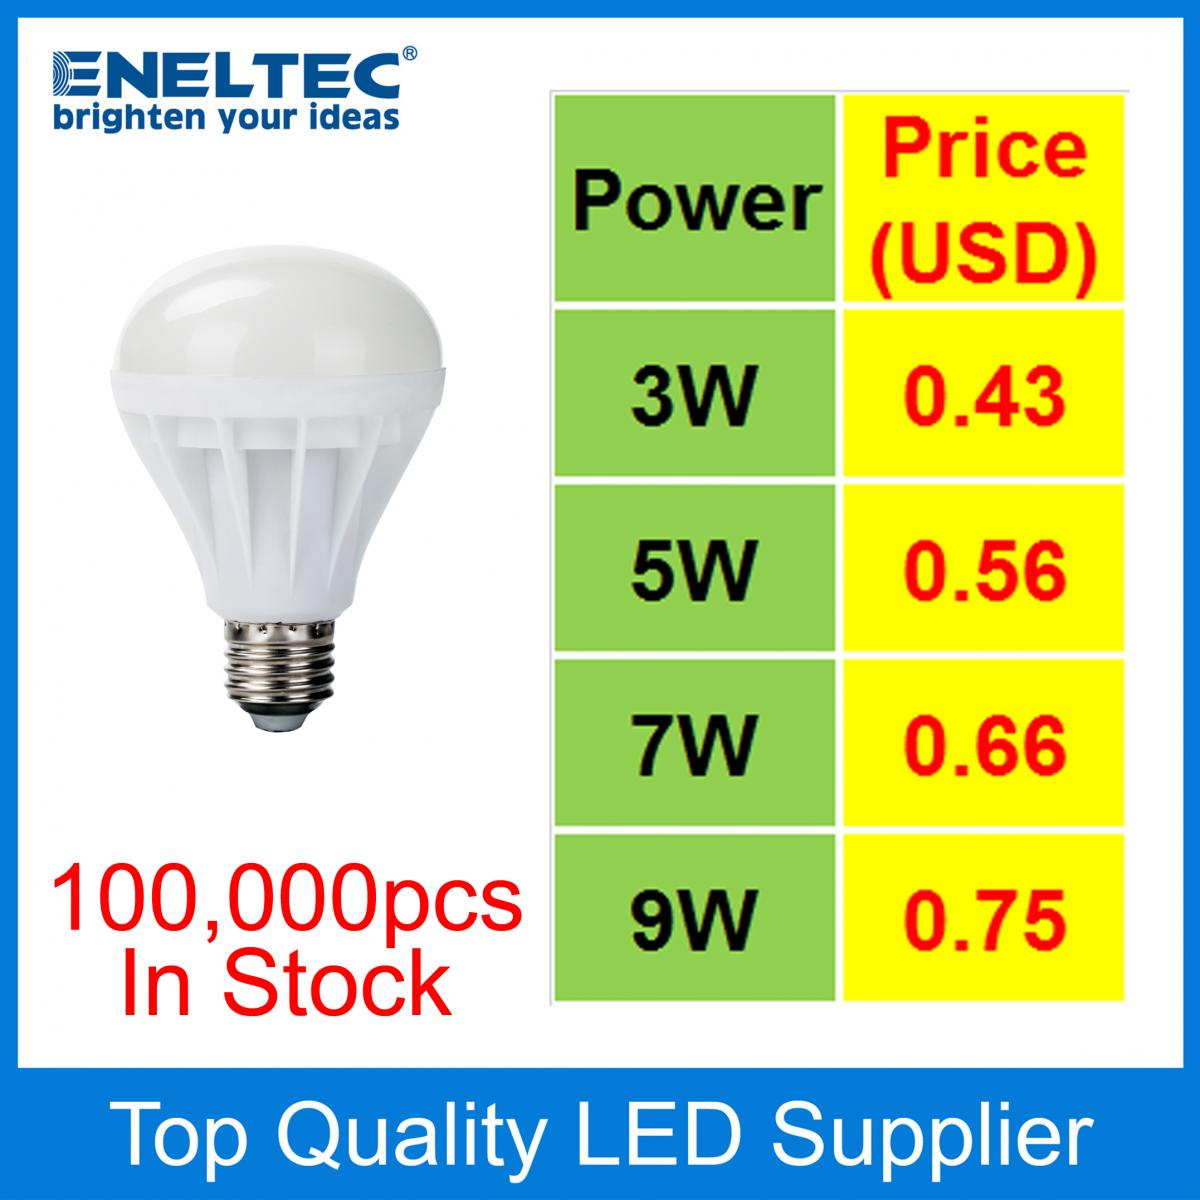 Led light bulbs price kridha india white 3w led bulbs buy kridha india white 3w Led light bulb cost